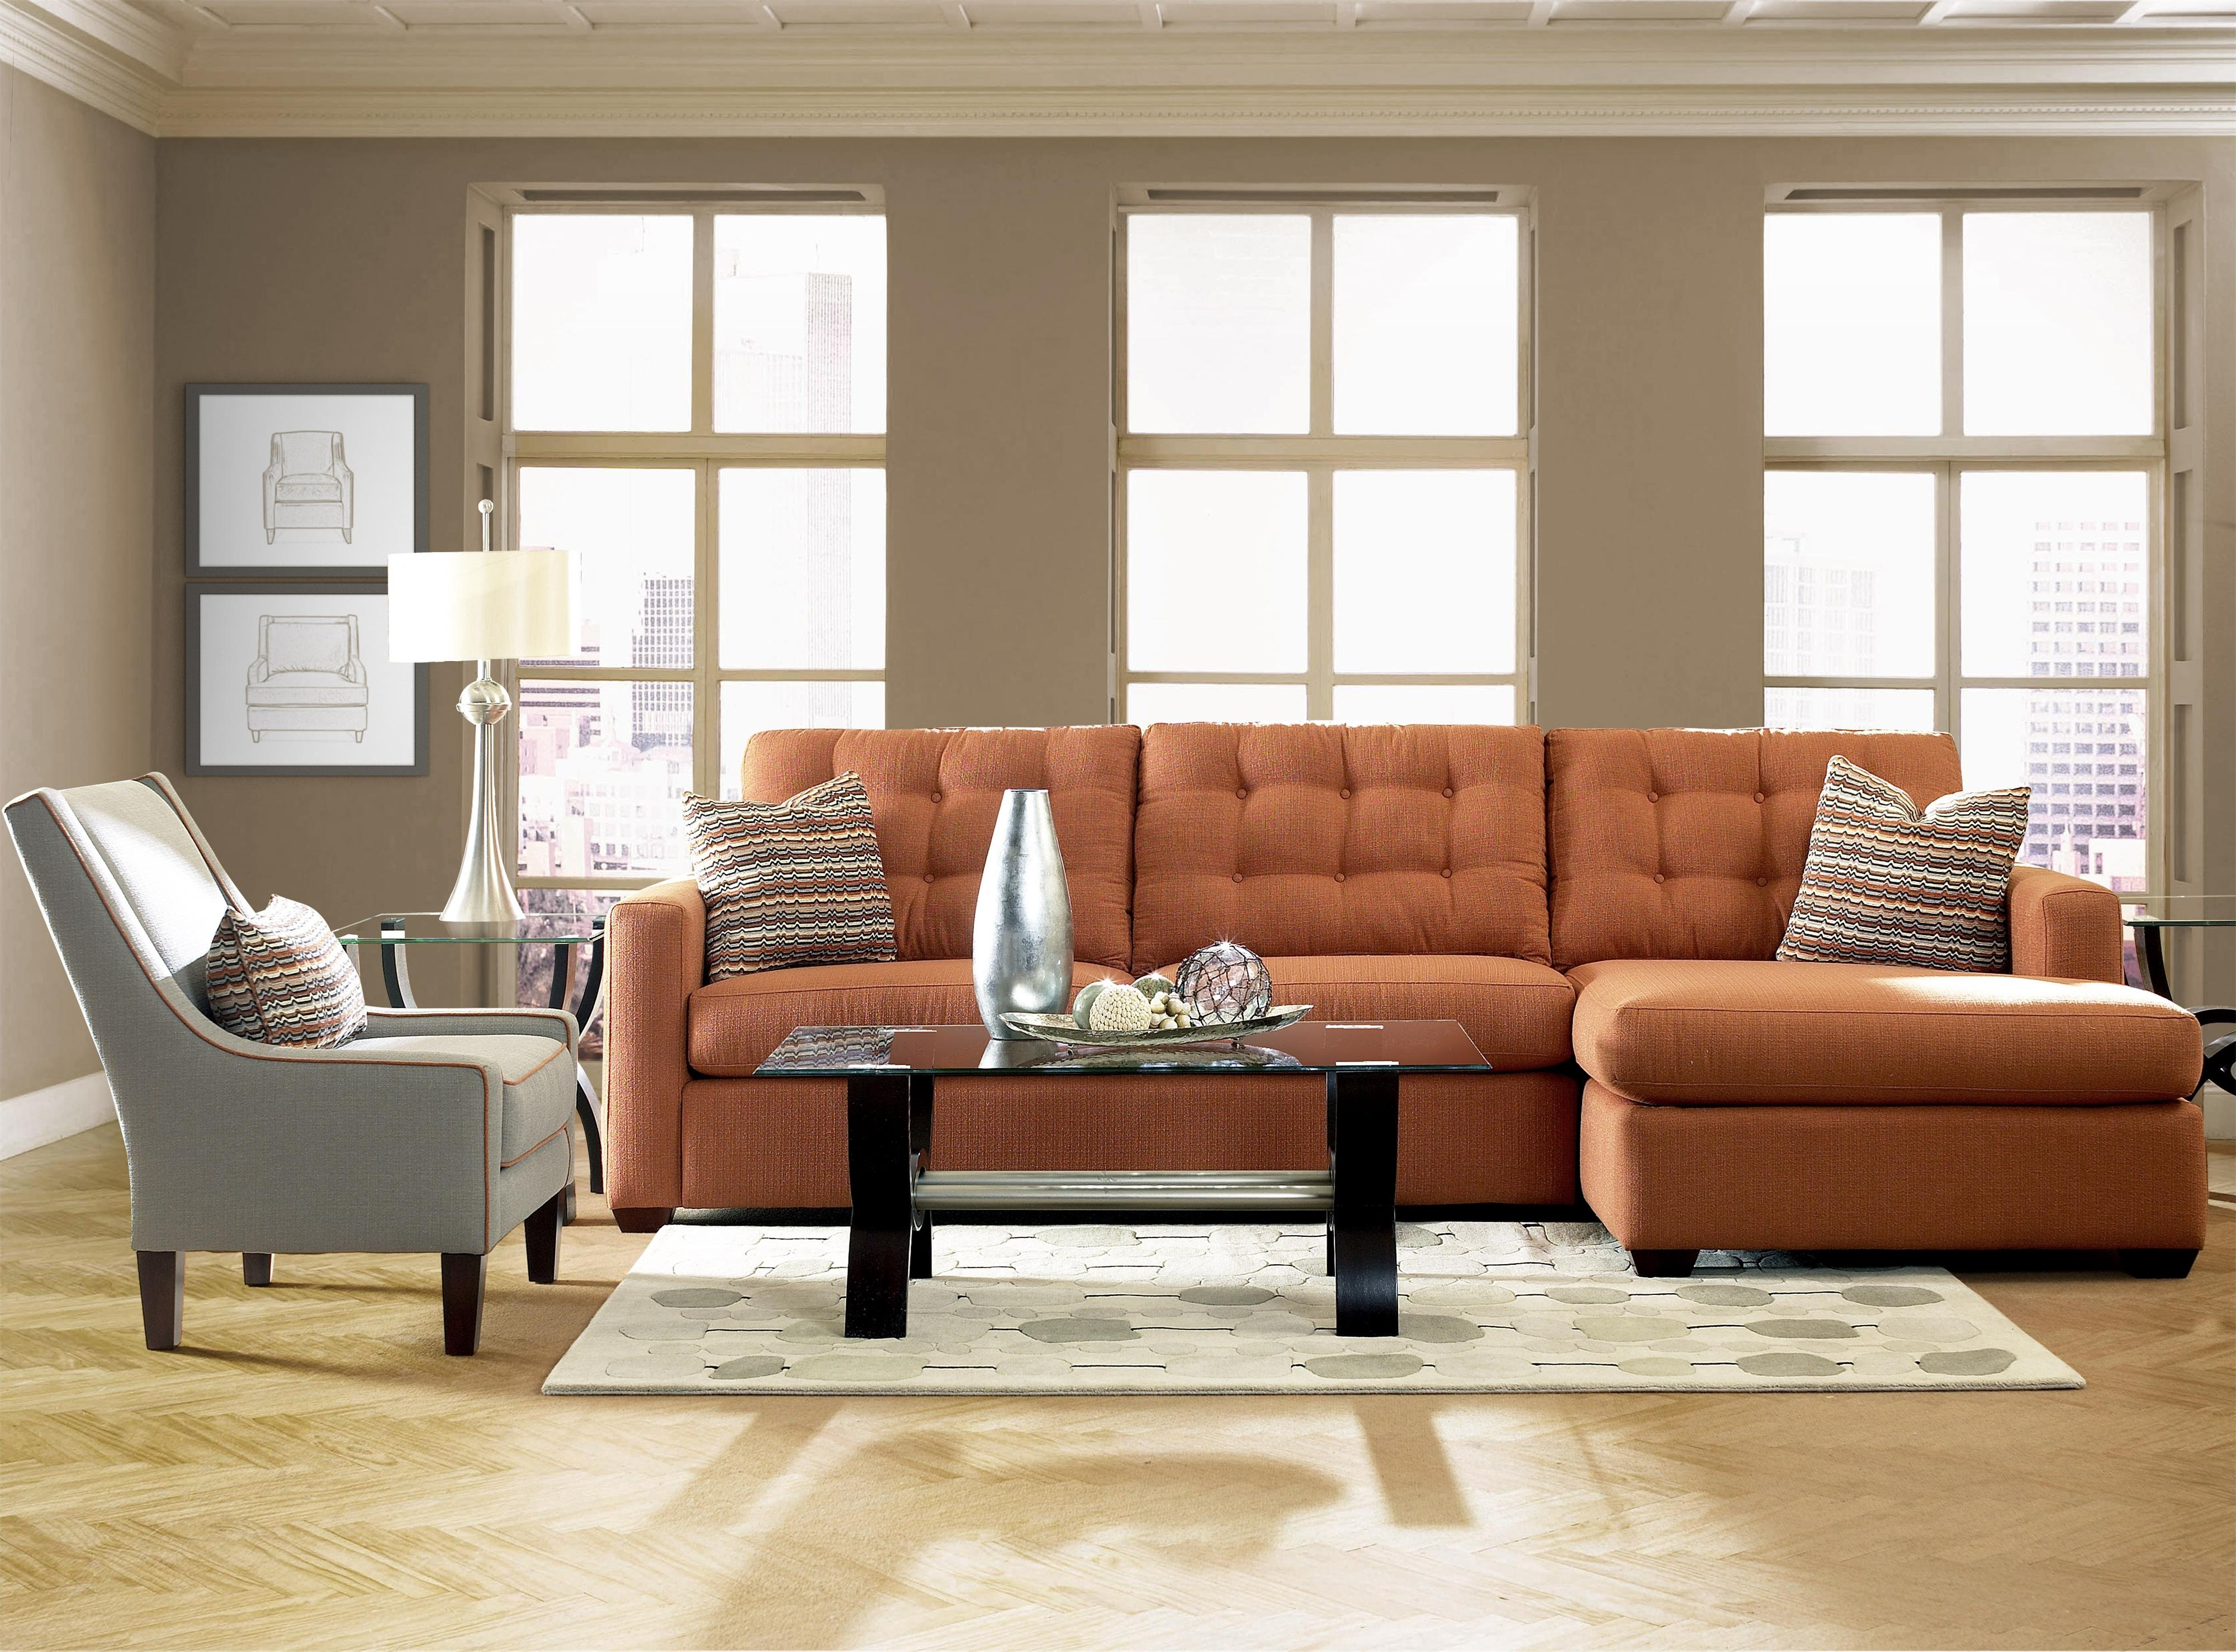 Coffee Tables For Sectional Sofa With Chaise Throughout 2018 How To Decorate A Living Room With A Sectional Couch Coffee Table (View 3 of 15)